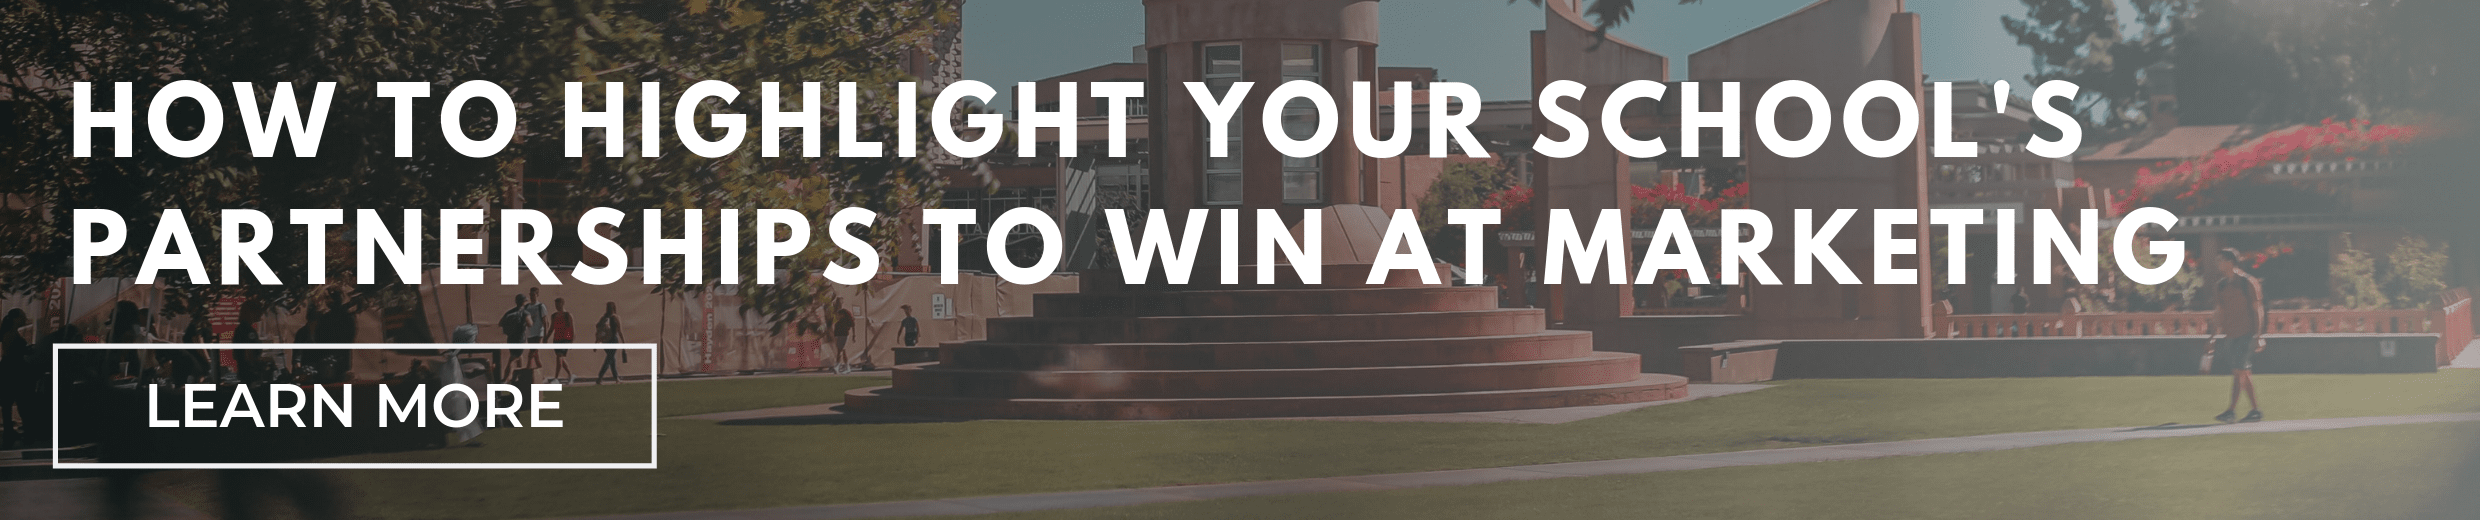 How to Highlight Your School's Partnerships to Win at Marketing